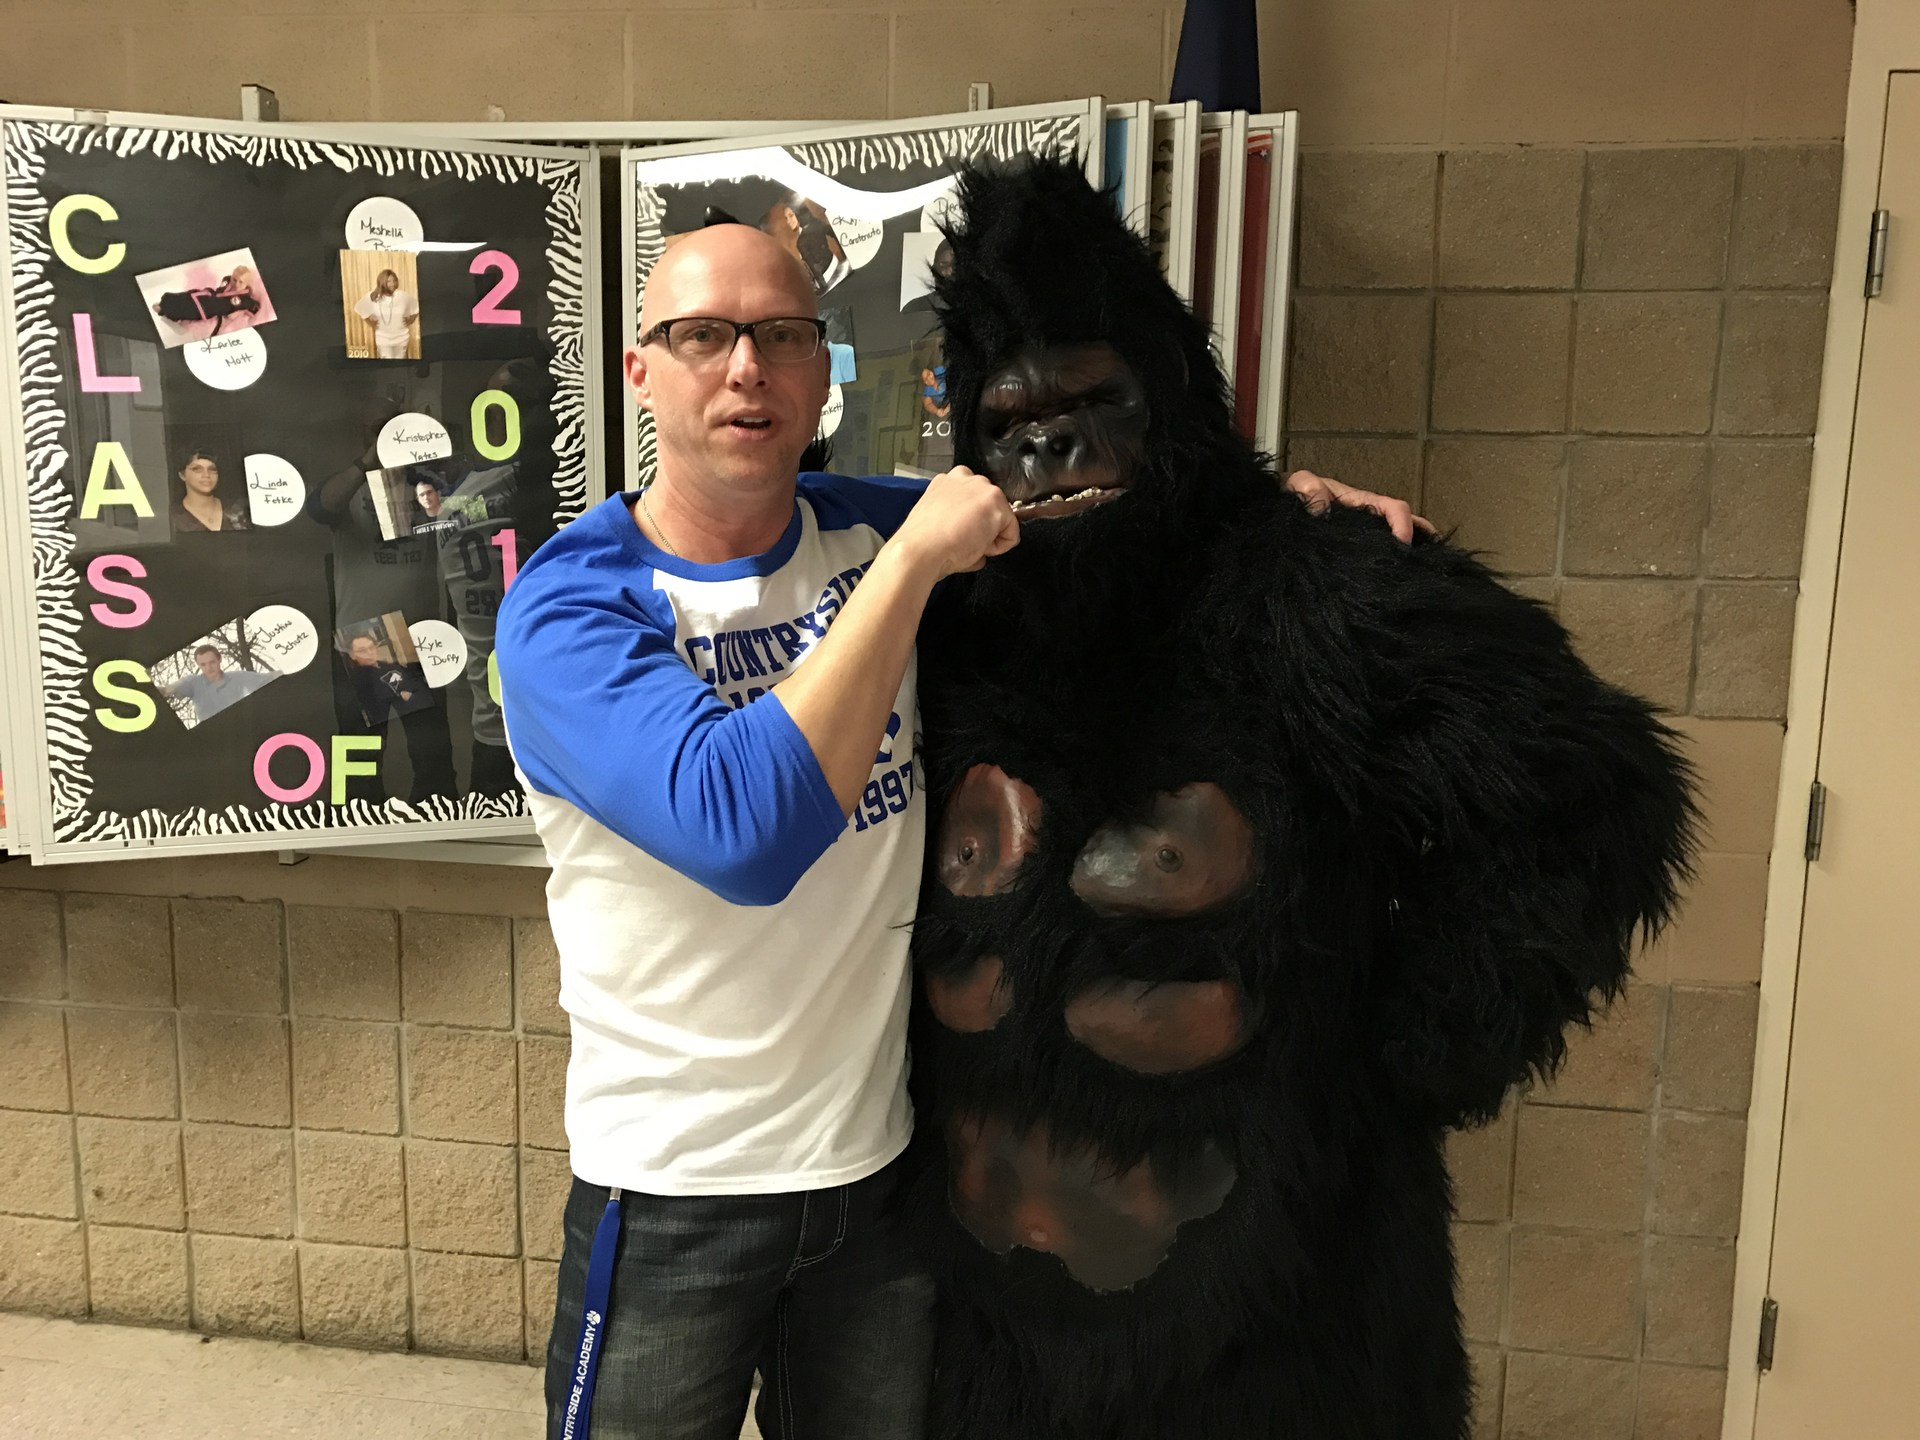 Staff with Gorilla